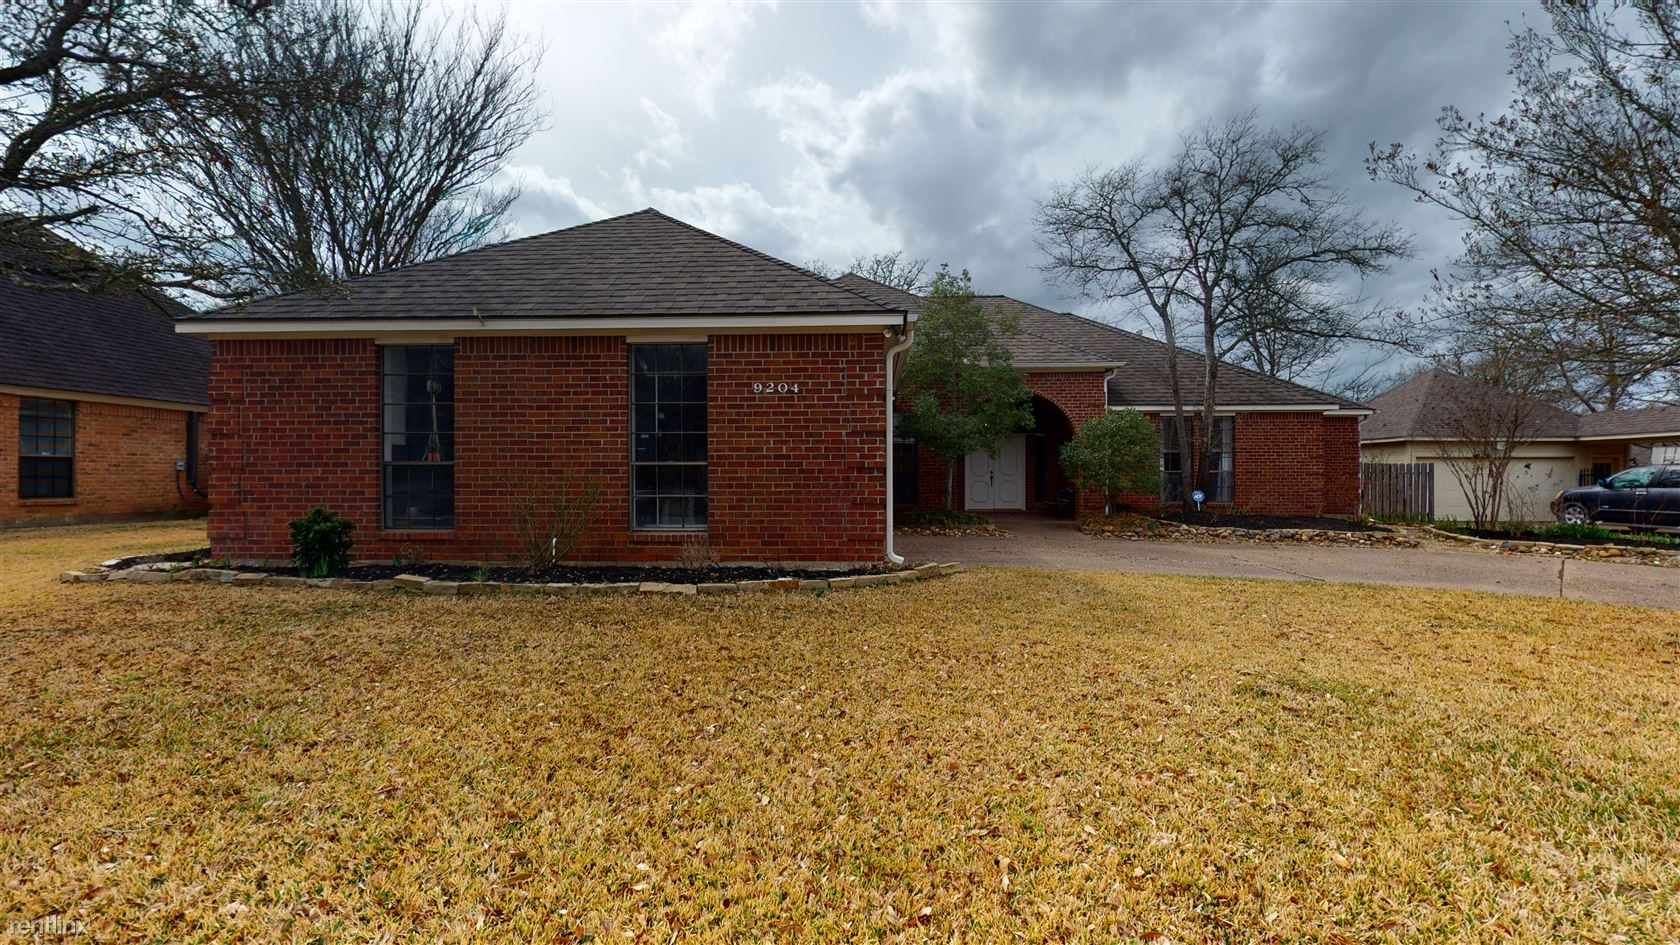 9204 Waterford Dr, College Station, TX - $2,500 USD/ month